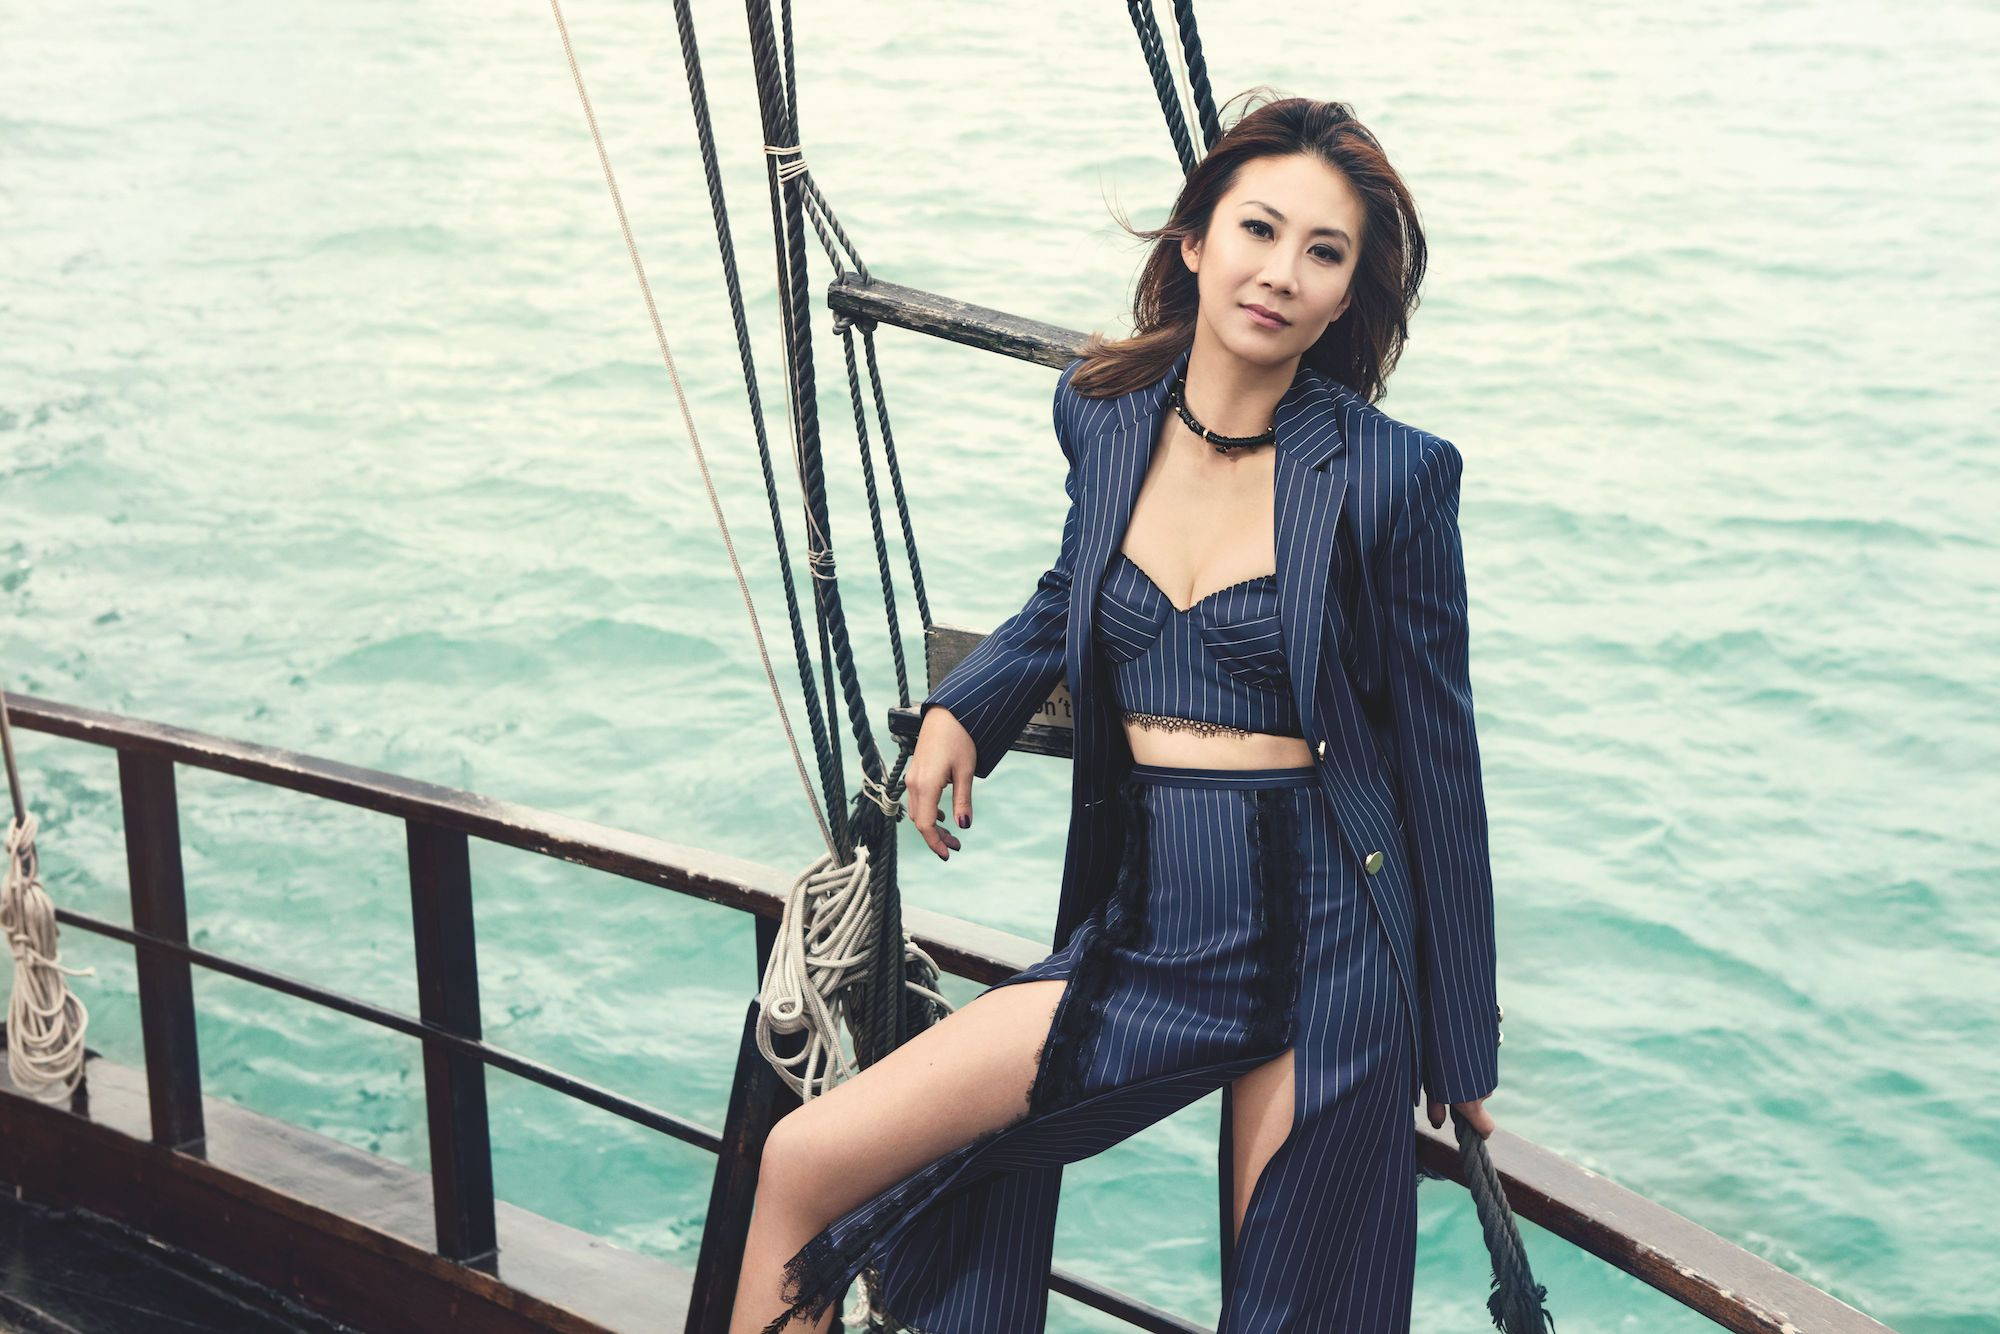 Source: Jason Capobianco for Hong Kong Tatler